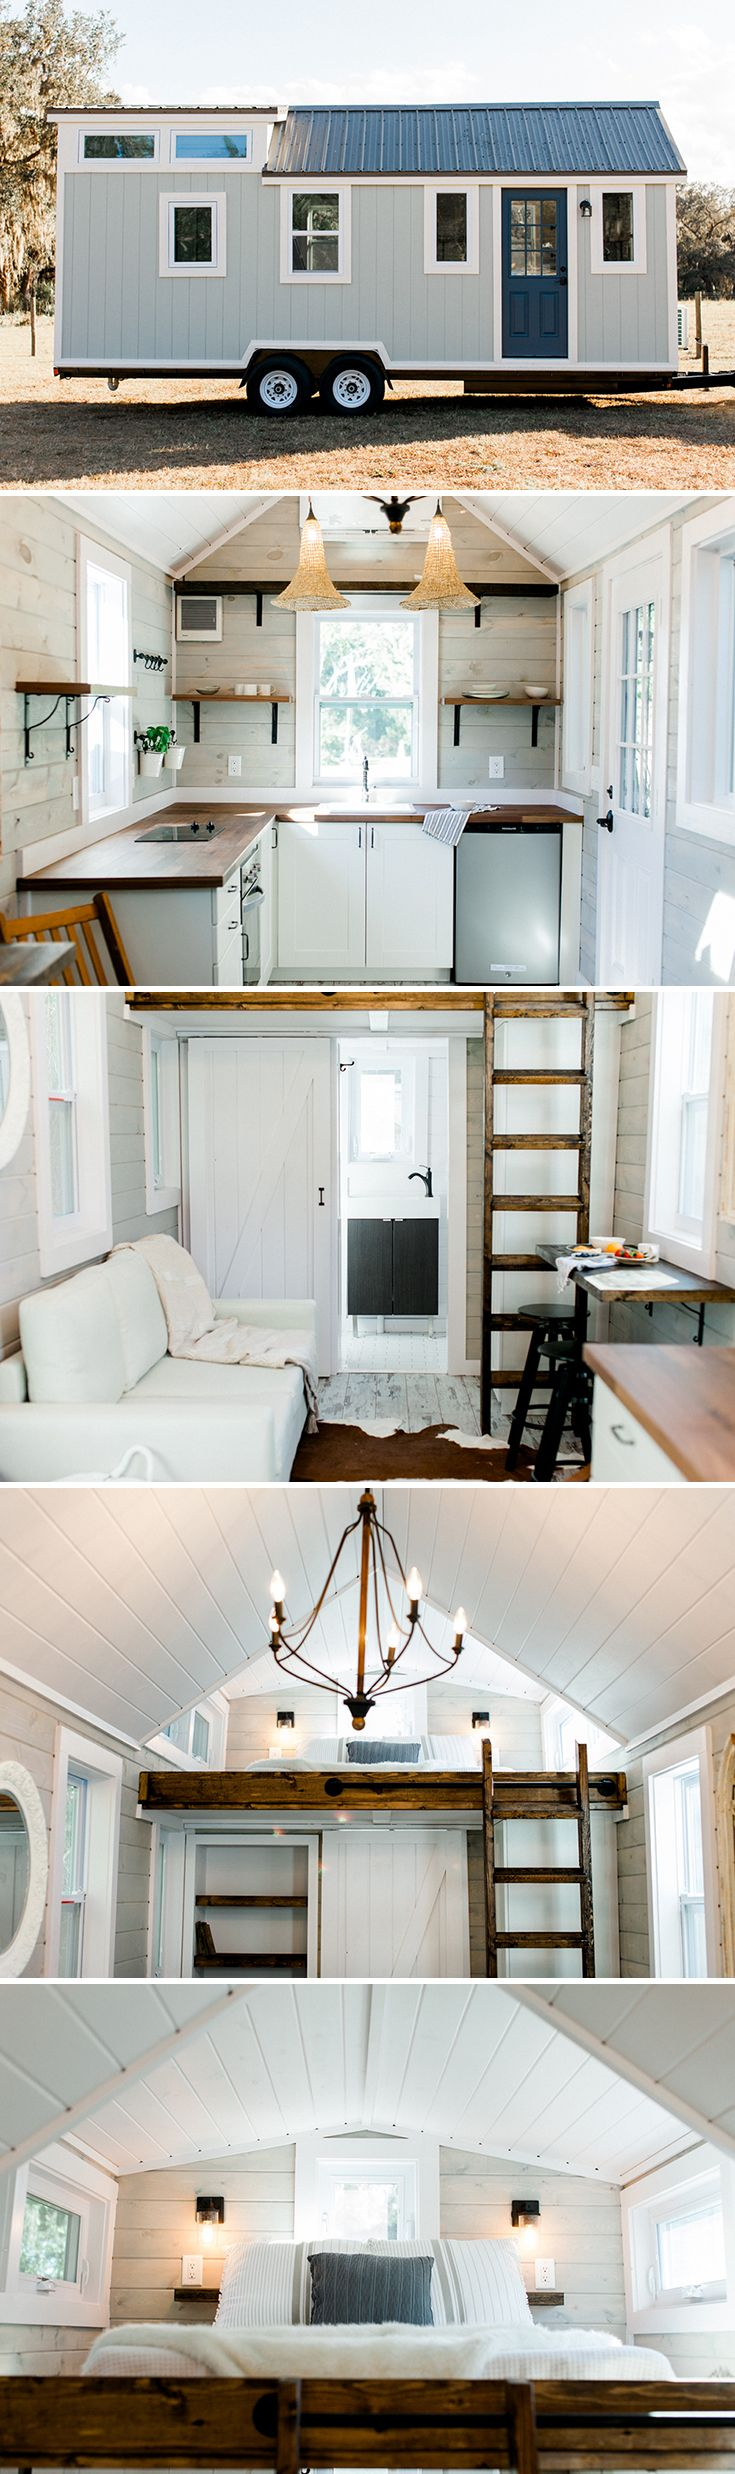 best 25 modern tiny house ideas only on pinterest tiny homes interior movable house and mini homes